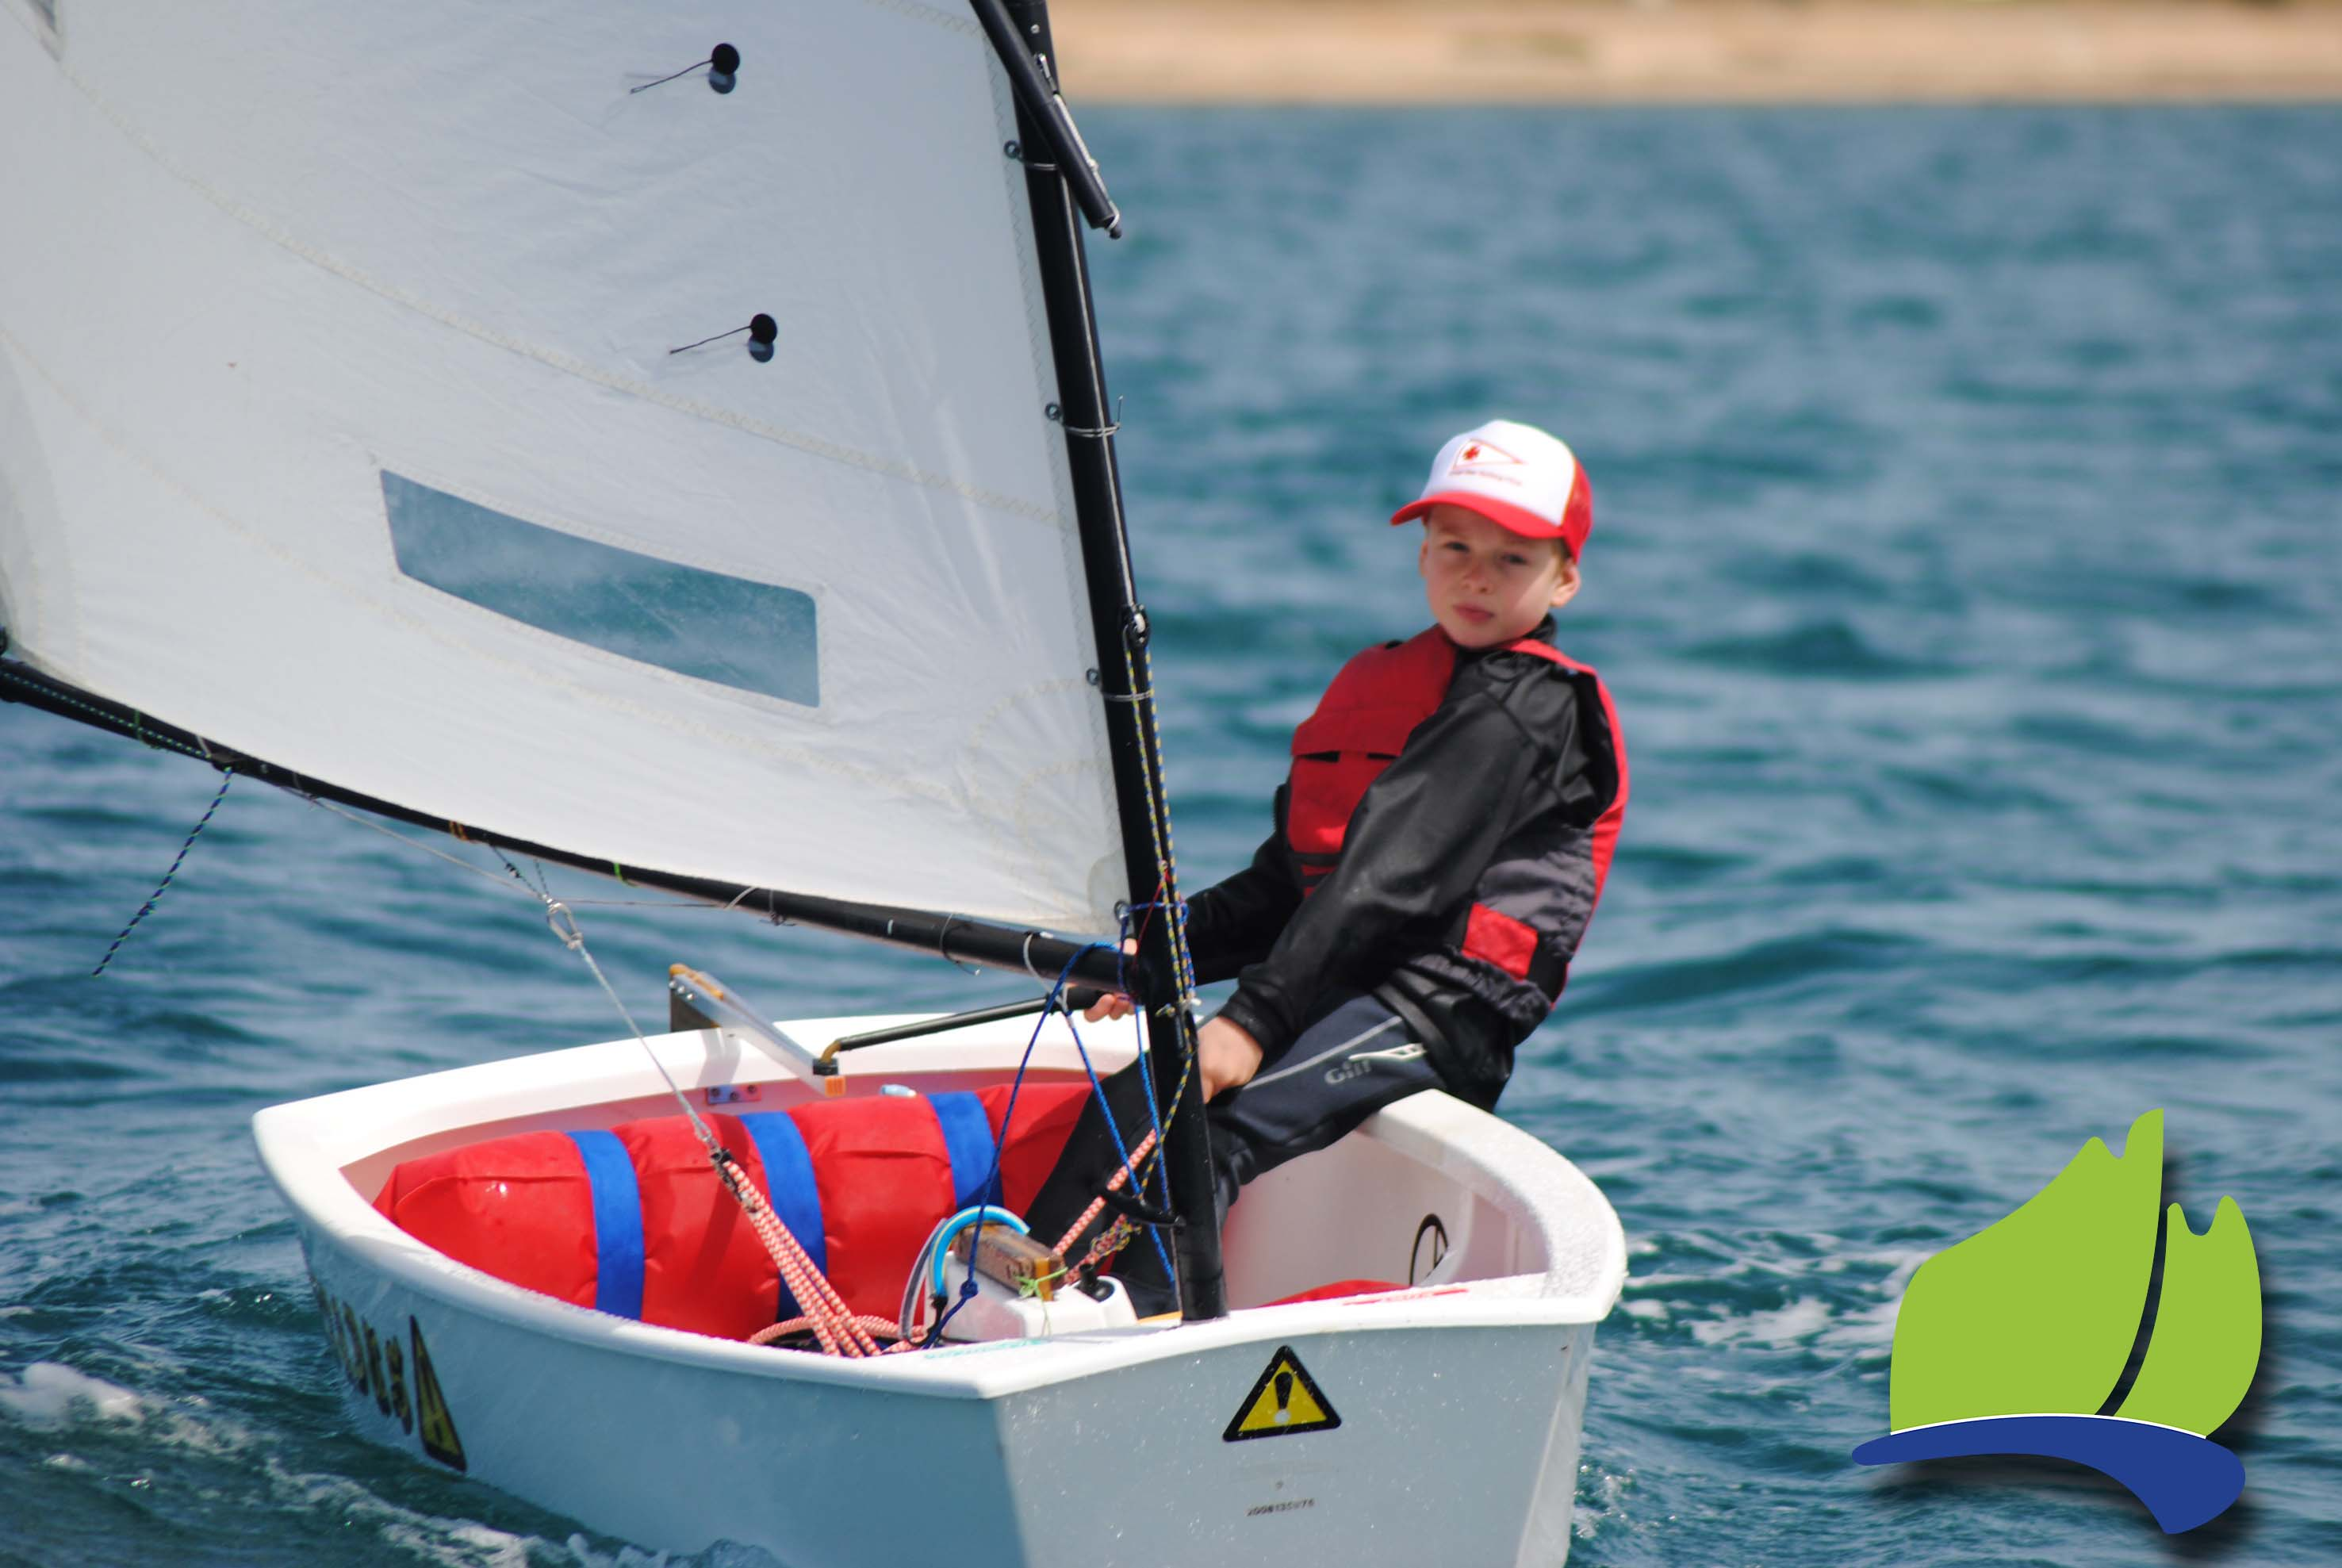 Archie Kretschmer, Largs Bay Sailing Club, was the overall winner in the optimist green fleet.